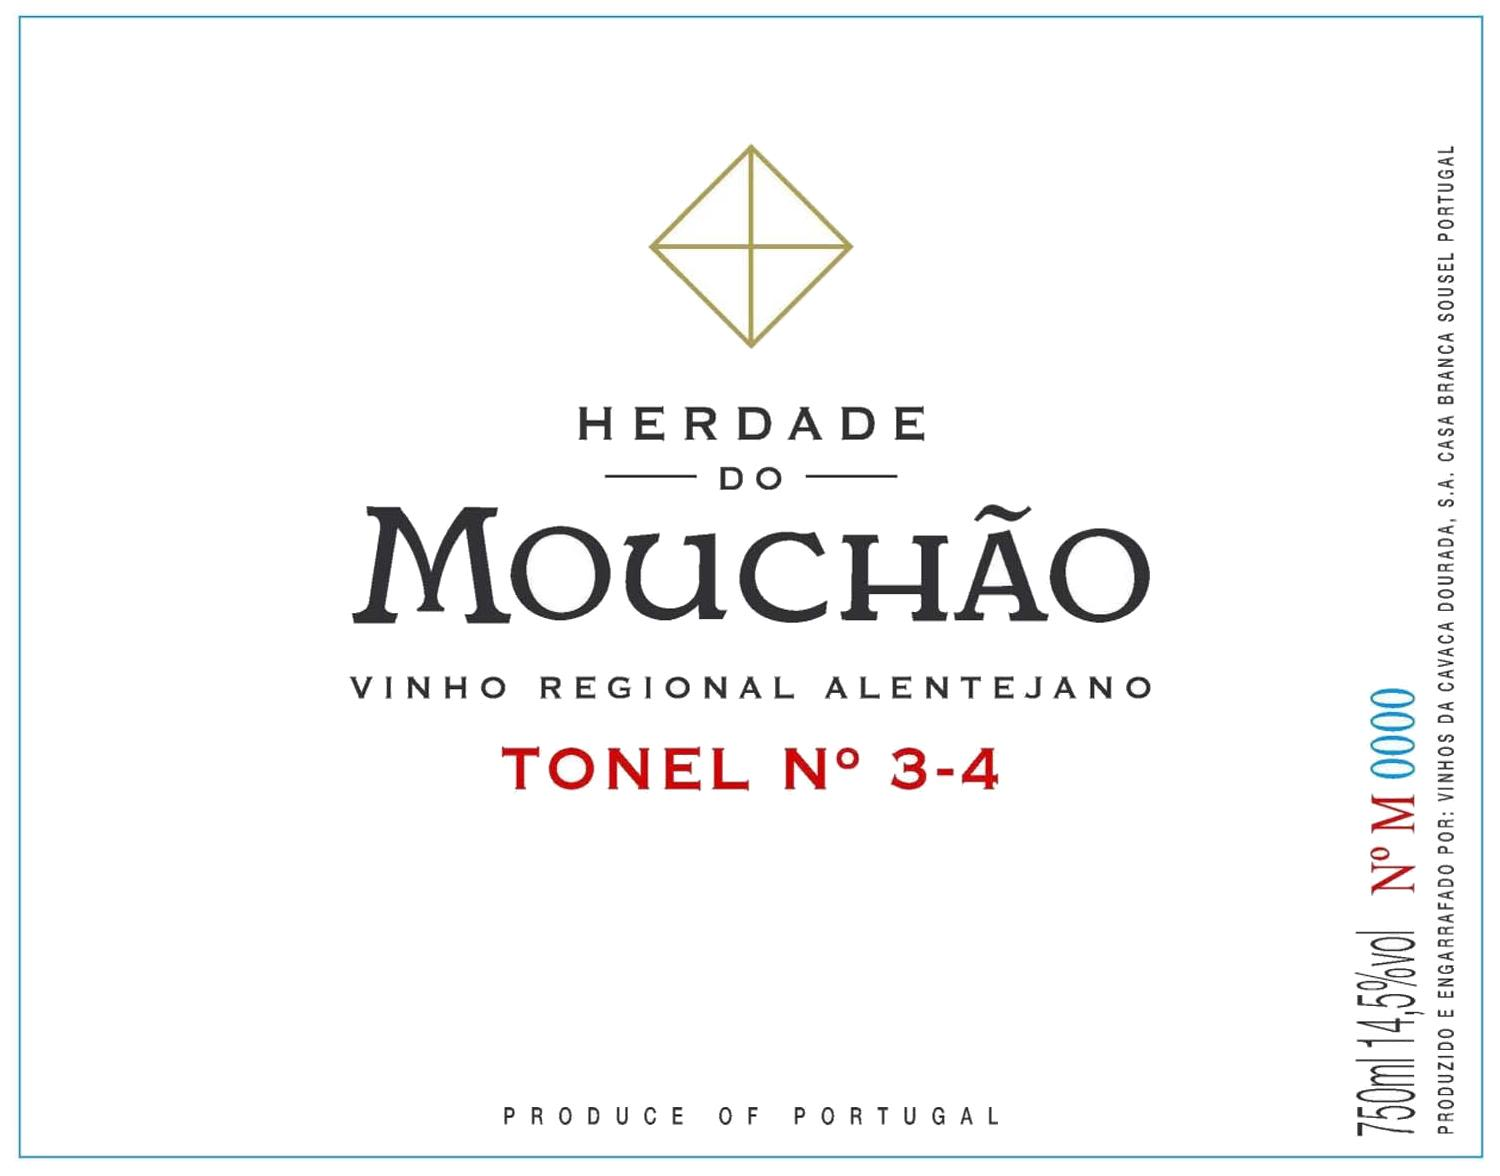 Herdade do Mouchao Tonel 3-4 2011 Front Label